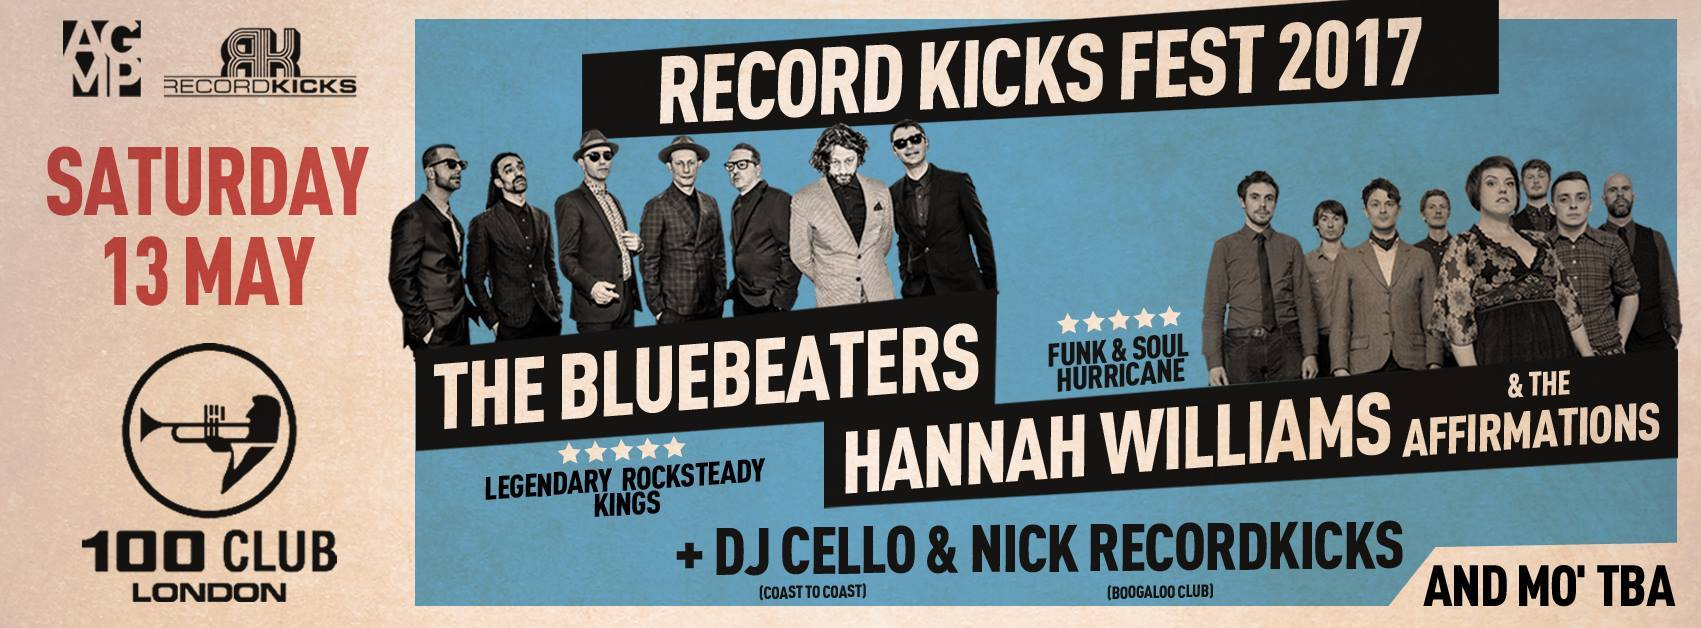 The Bluebeaters and Hannah Williams